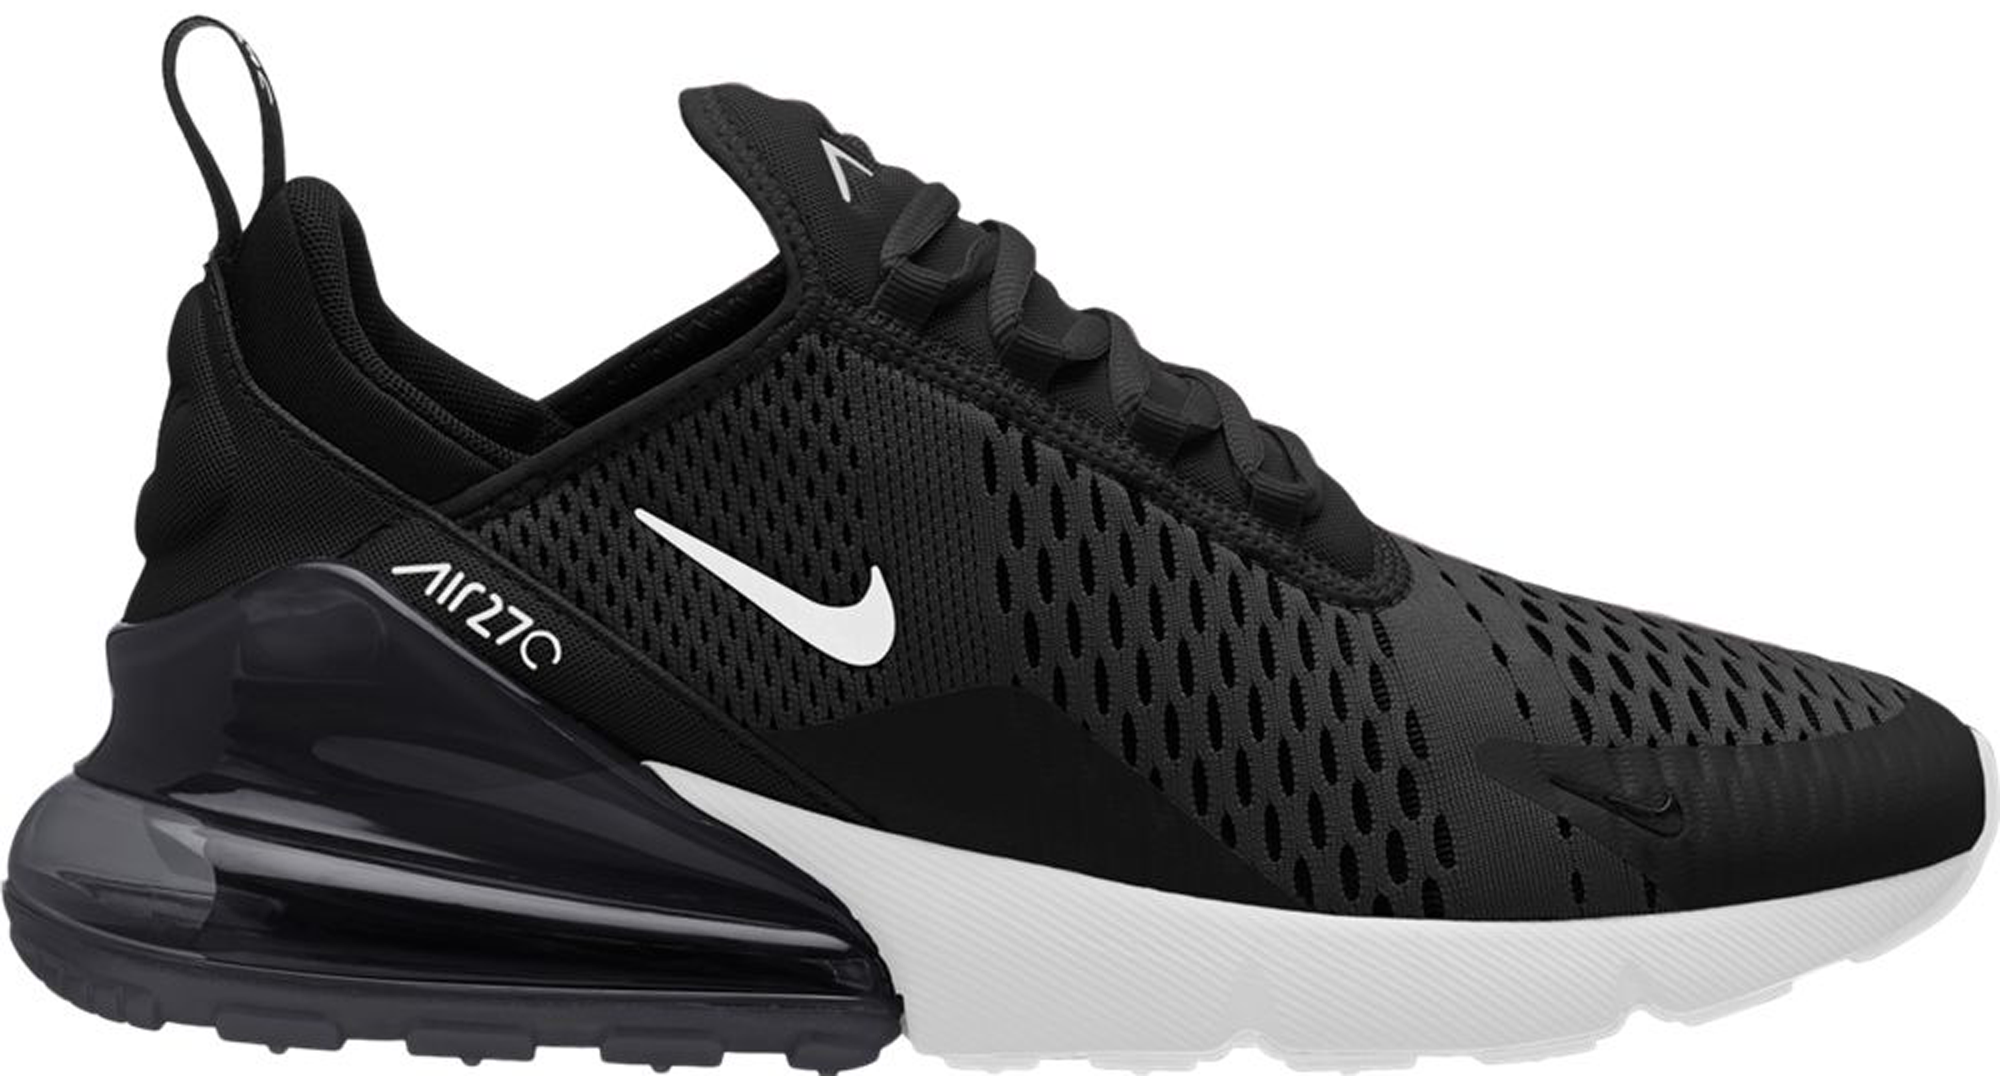 022e13132f46 ... promo code for air max 270 flyknit mens by nike online the iconic  australia 80d3b fa4b8